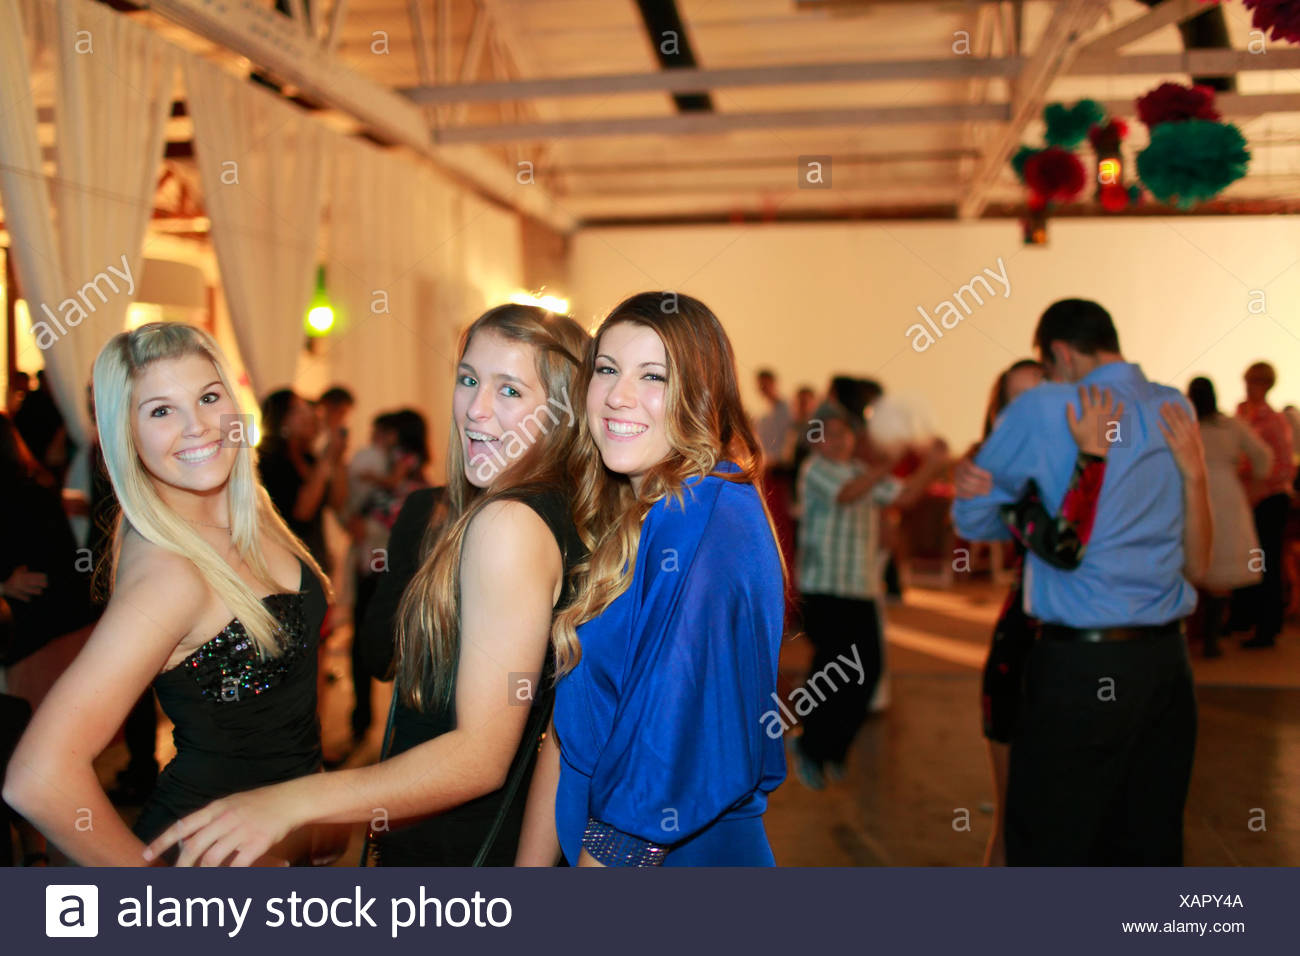 fc001cacd Teenage girls dancing at birthday party Stock Photo  282016682 - Alamy